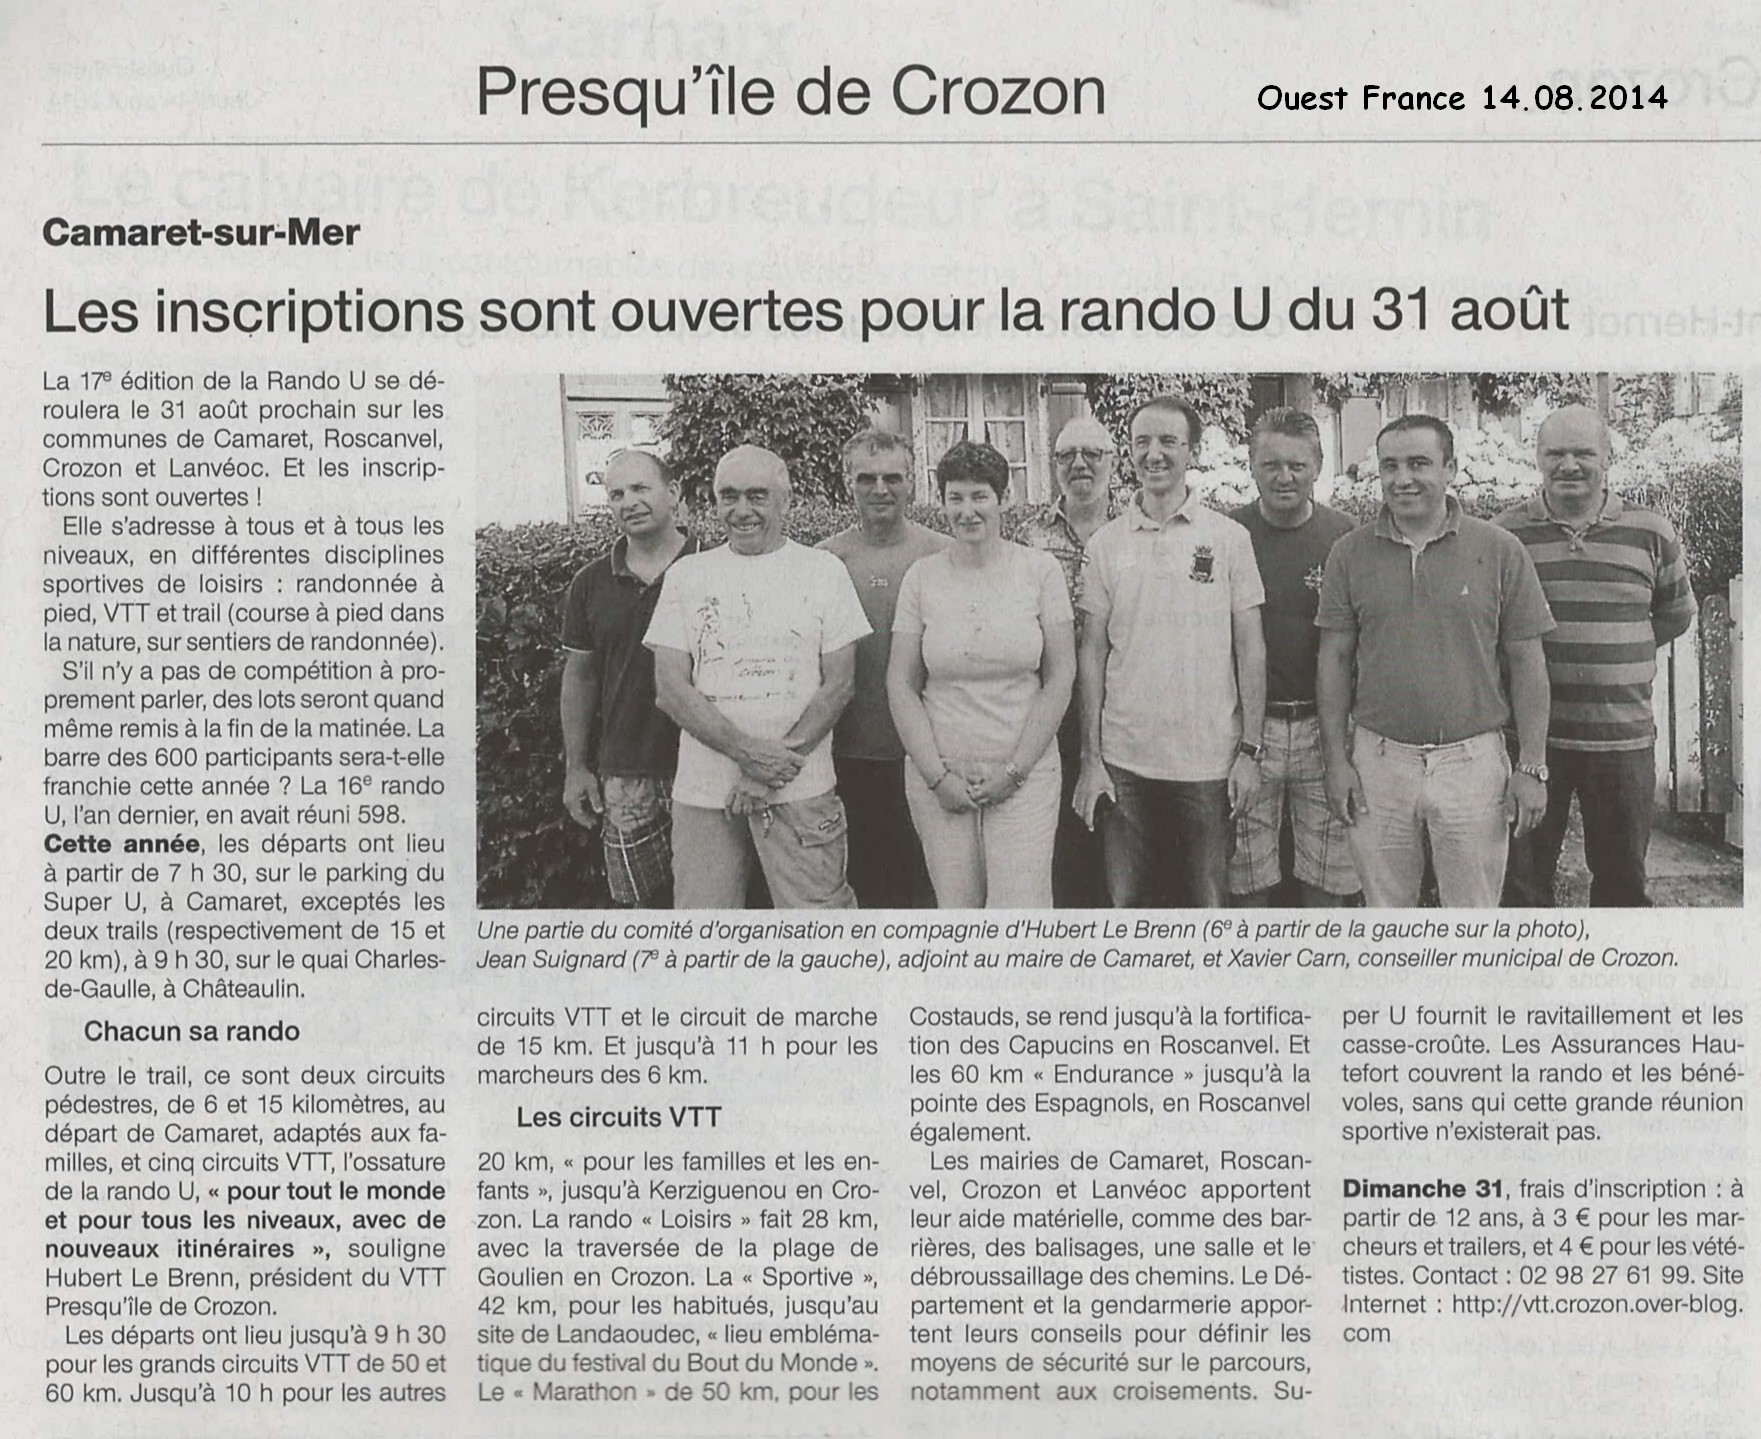 ouest_france_14082014.jpg